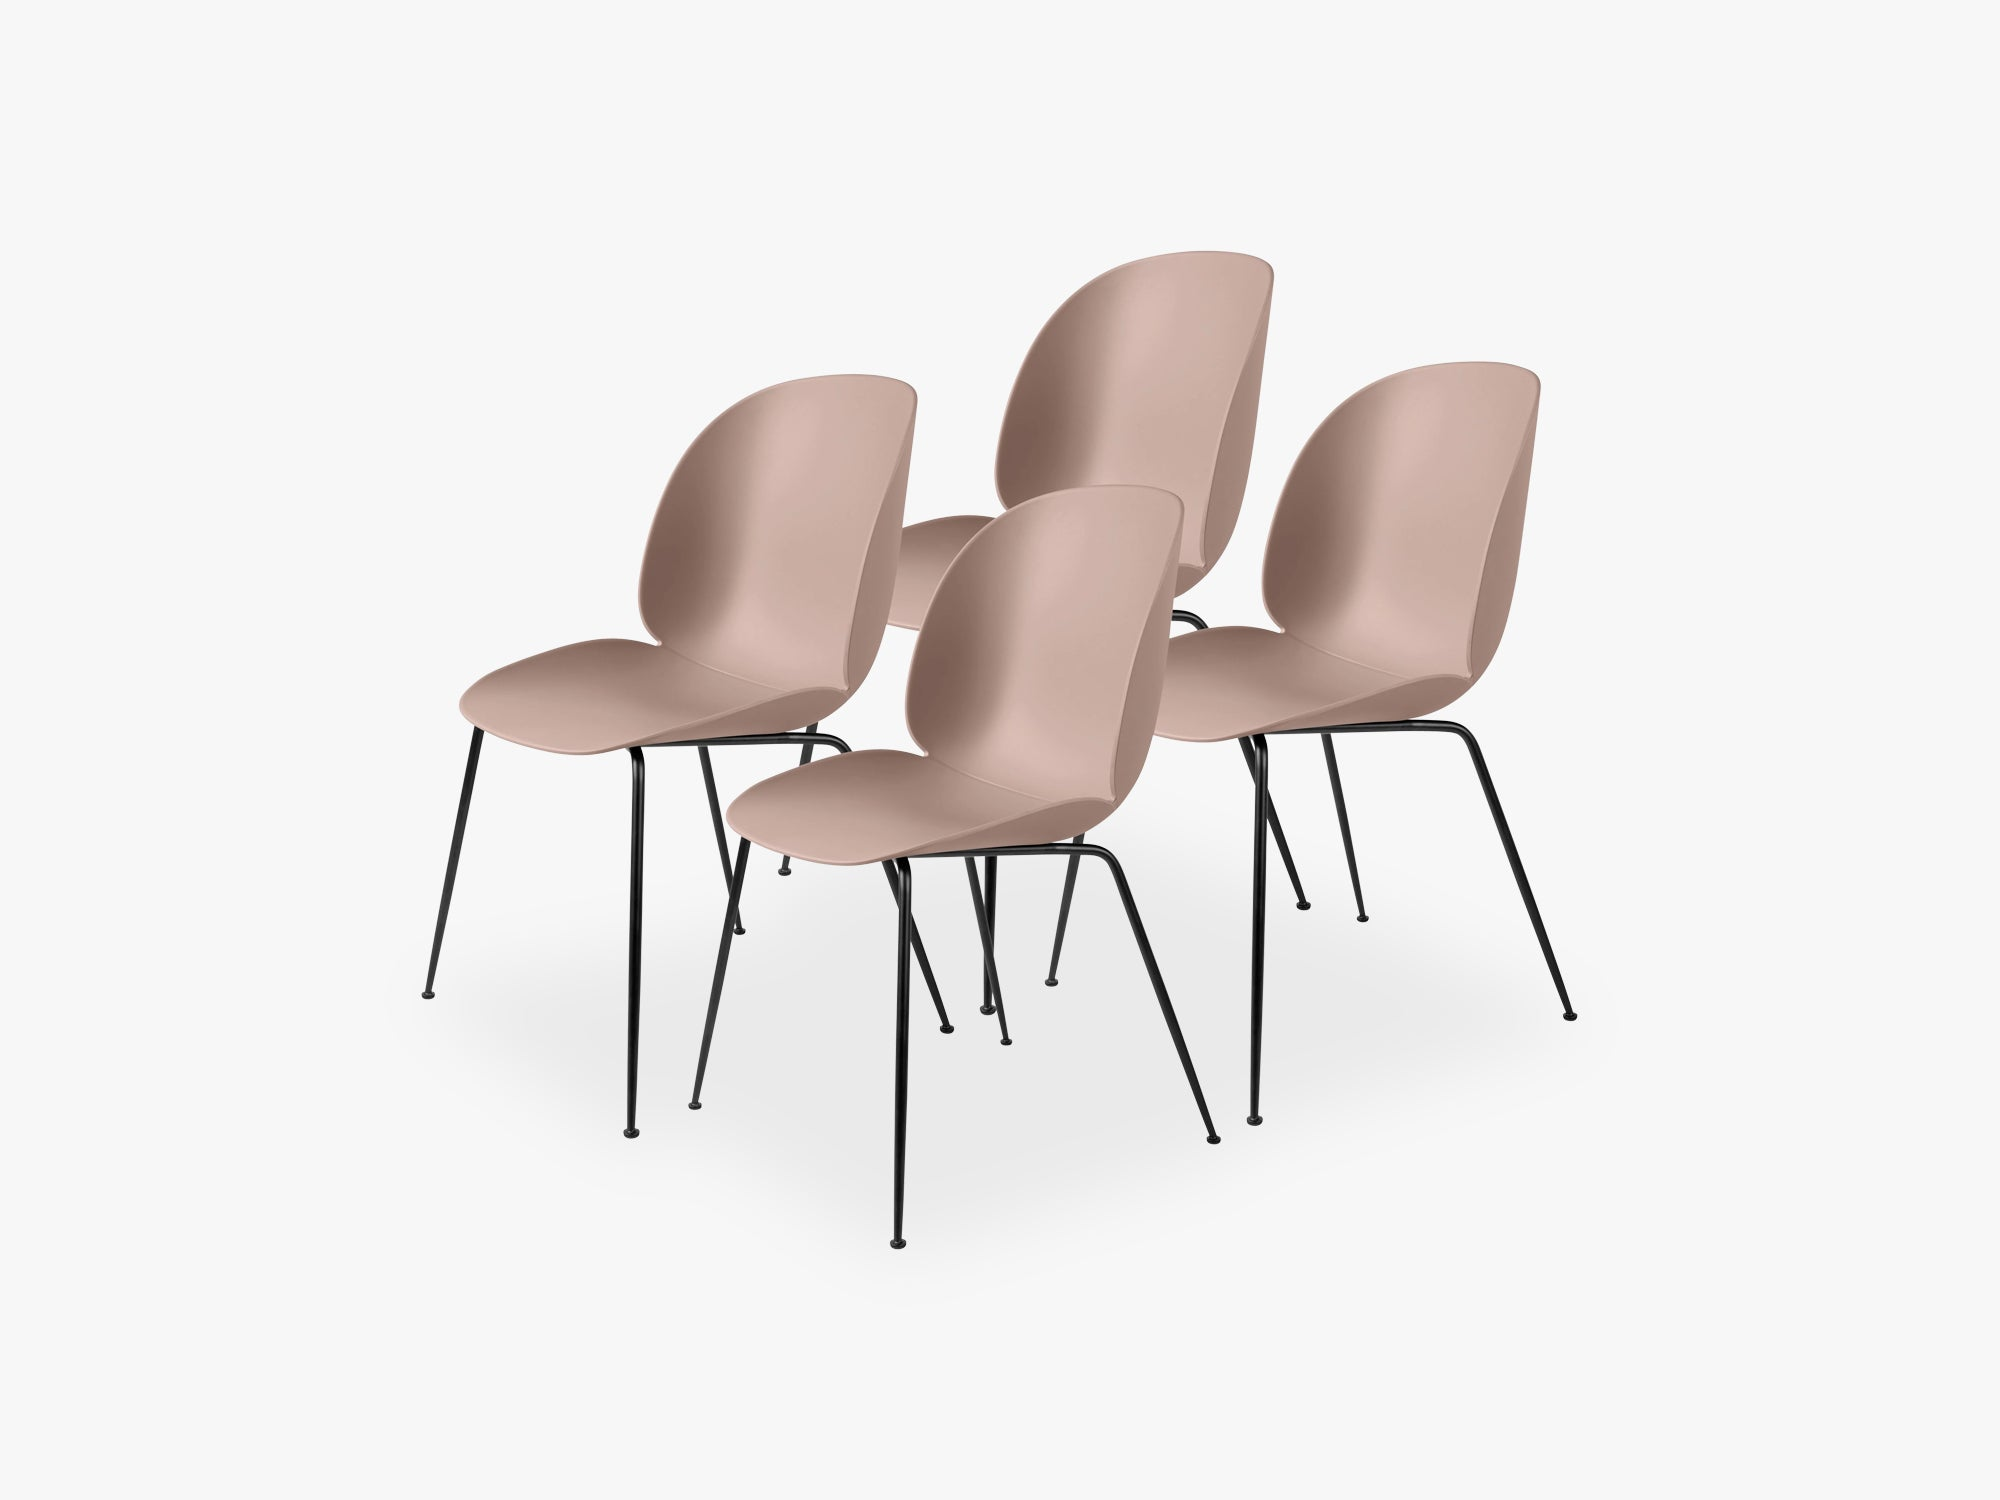 Beetle Dining Chair 4 pcs - Conic Black Matt Base, Sweet Pink fra GUBI